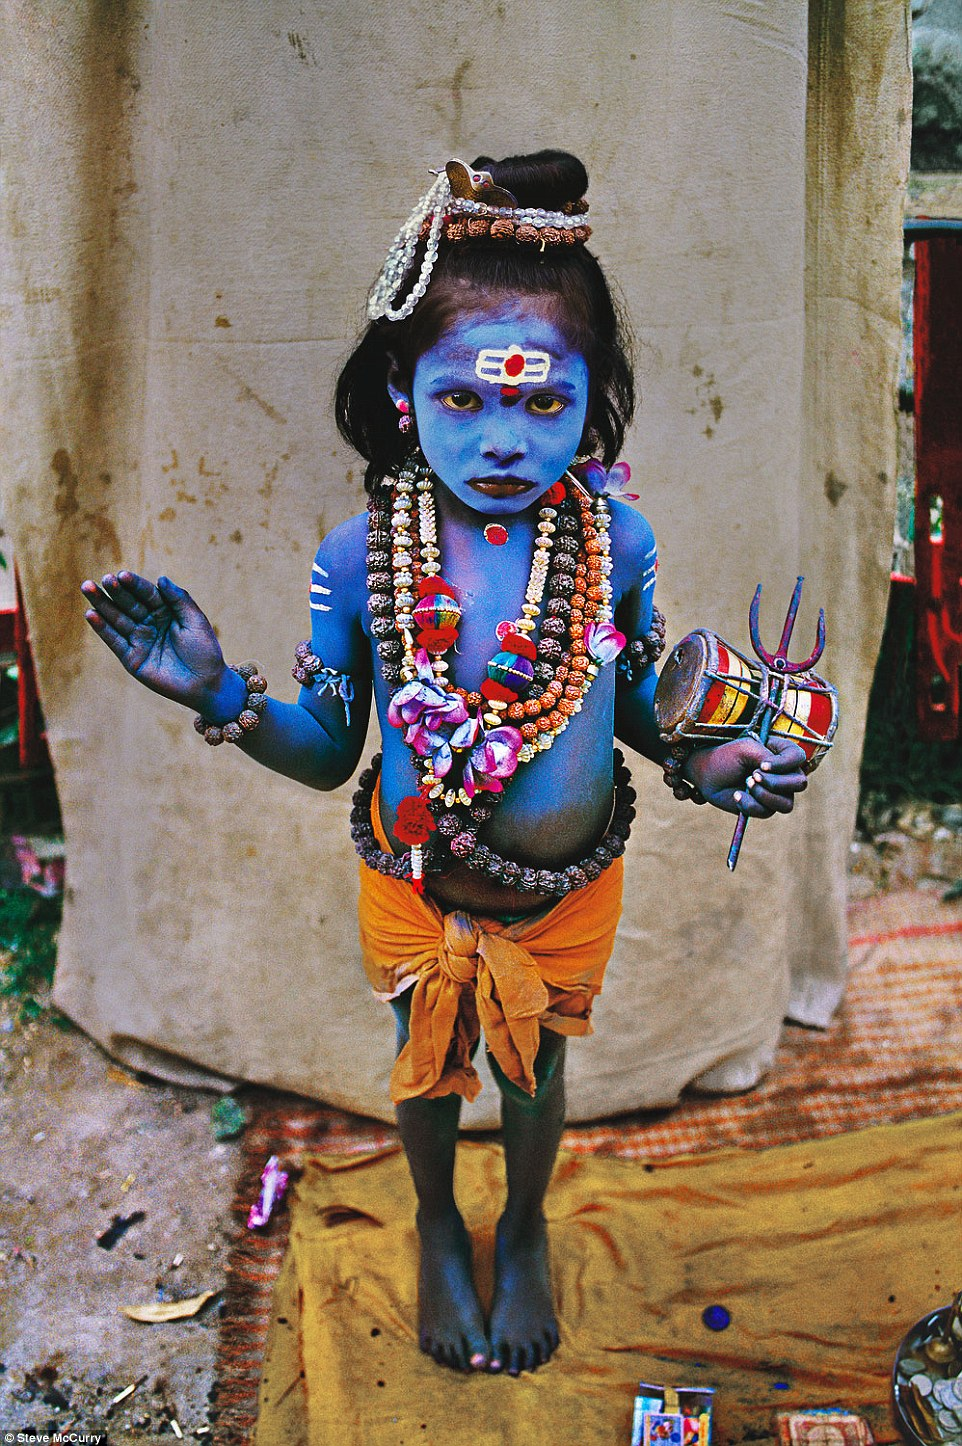 Haridwar, India, 1998. A young child dressed as the Hindu Deity Lord Shiva, often depicted in the colour blue, asks for alms at a religious festival